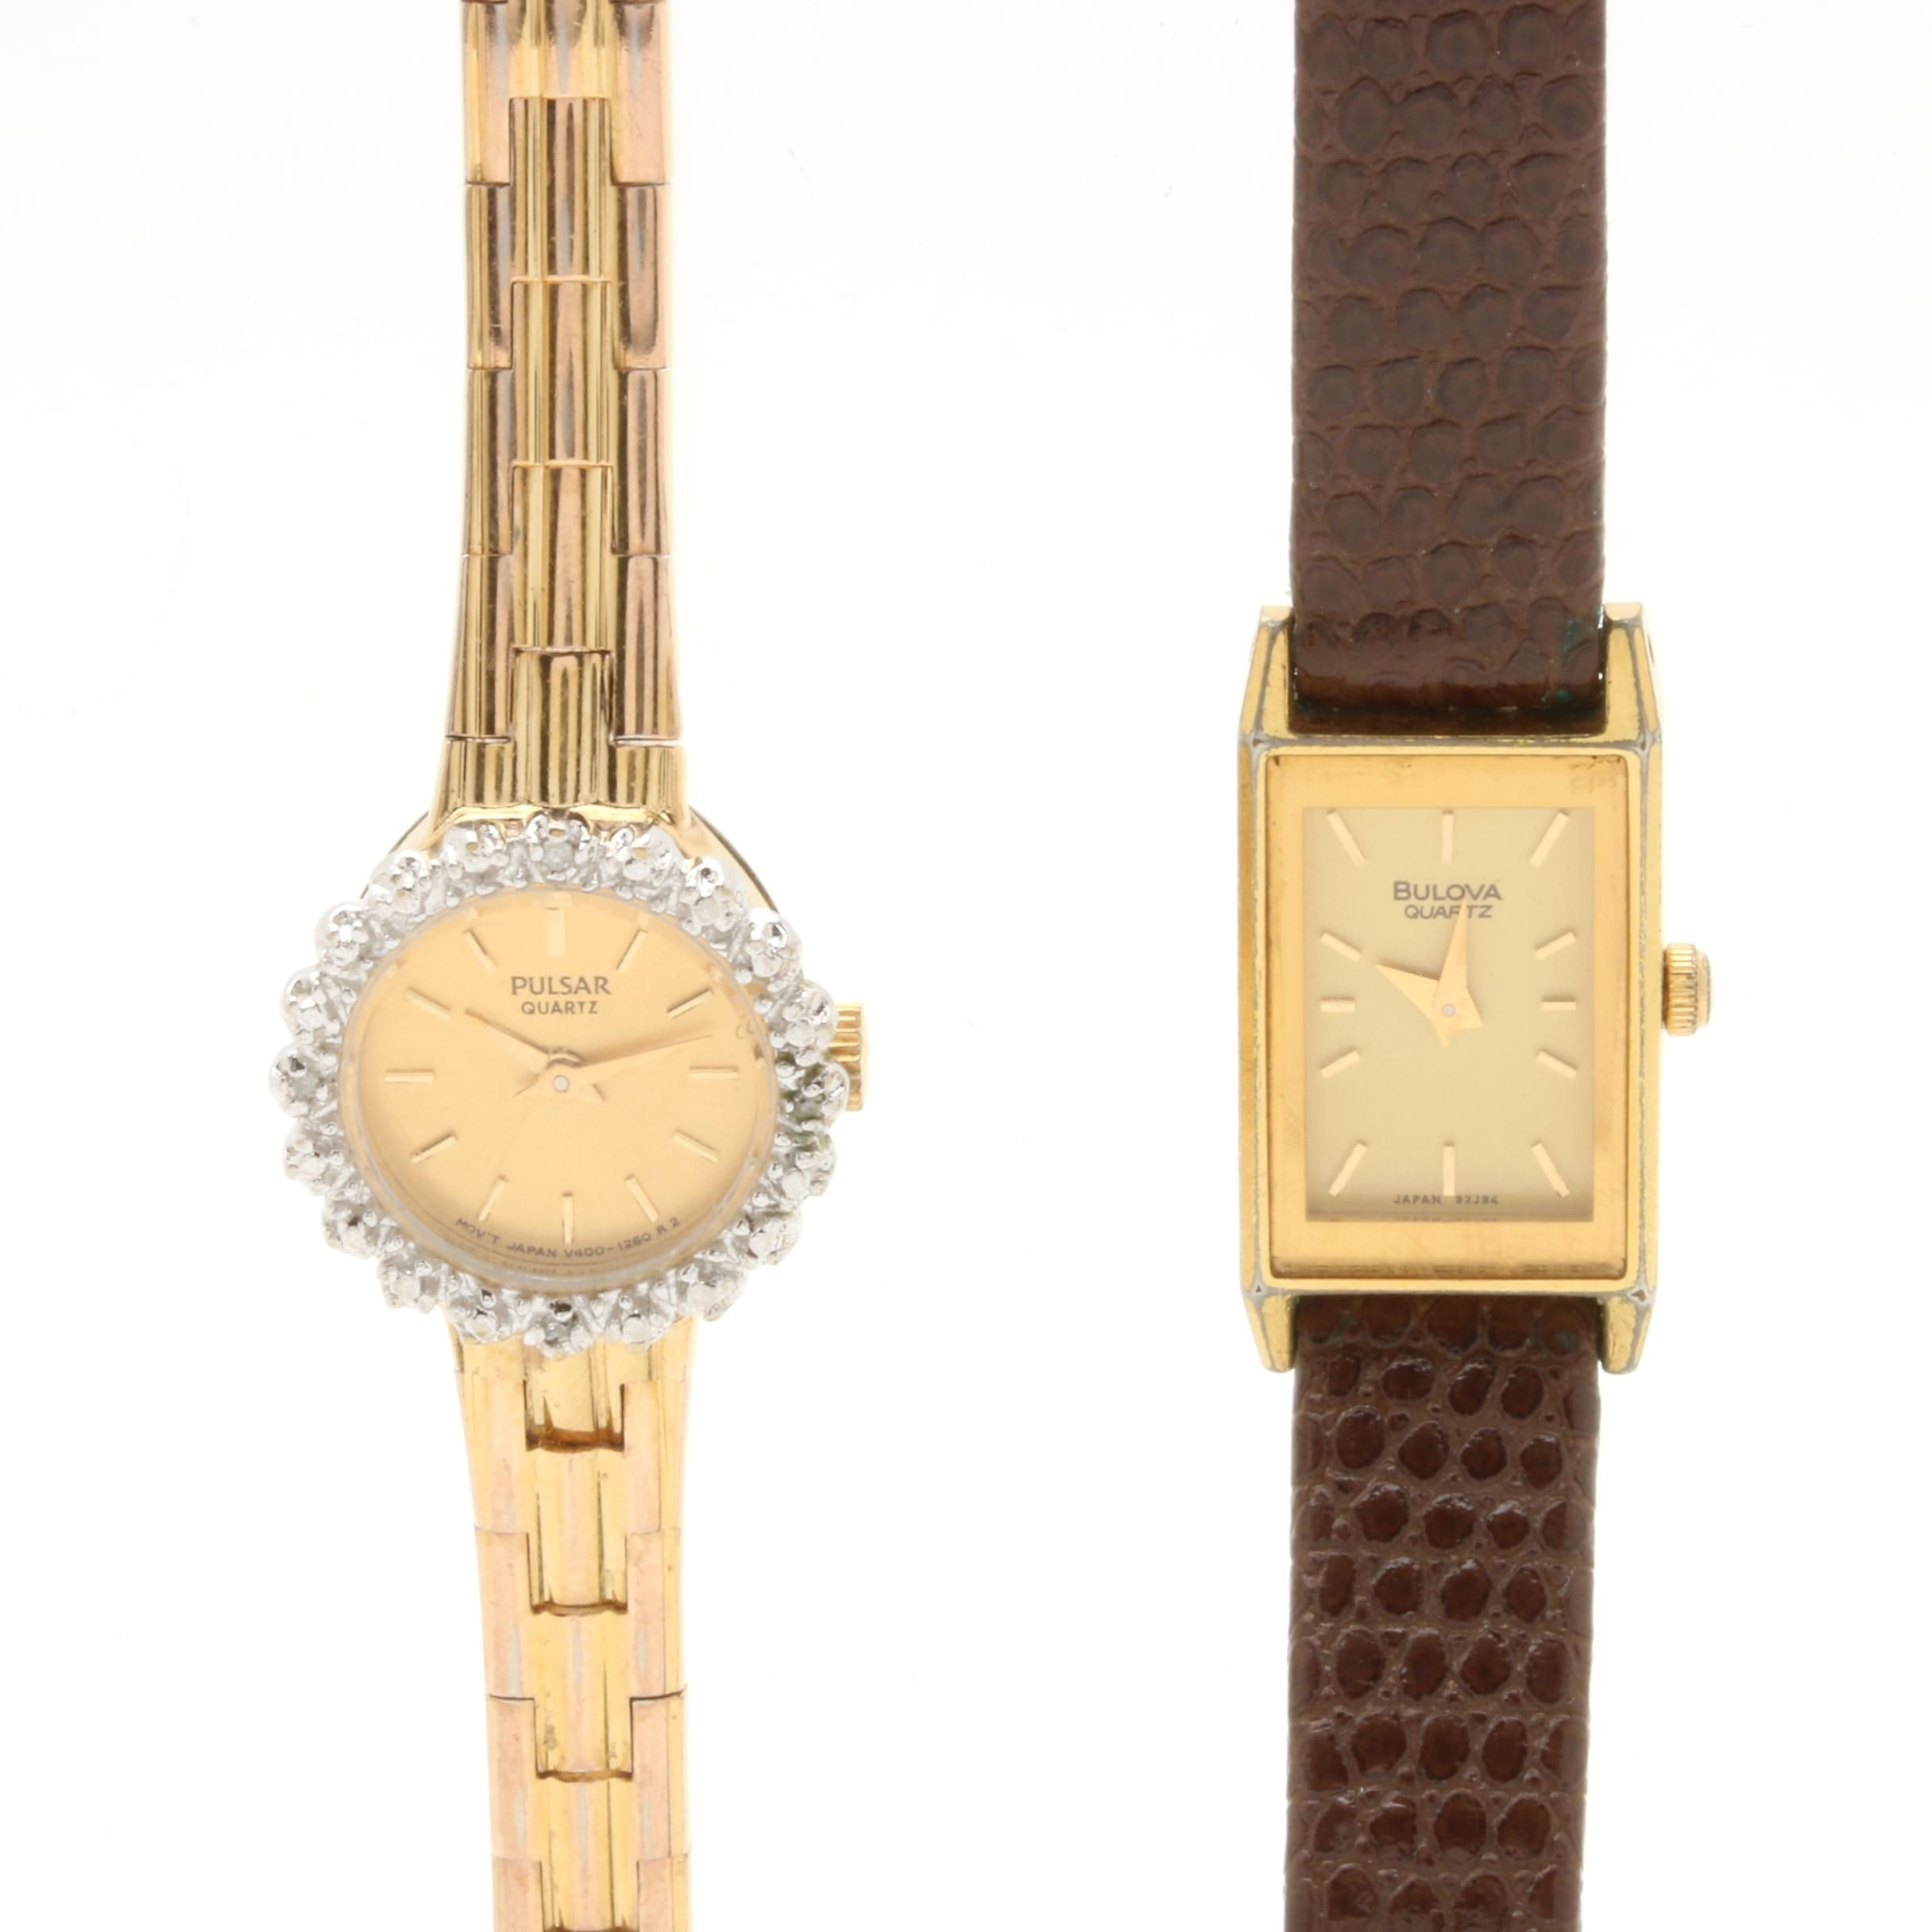 Pulsar and Bulova Gold Tone Diamond Wriswatches